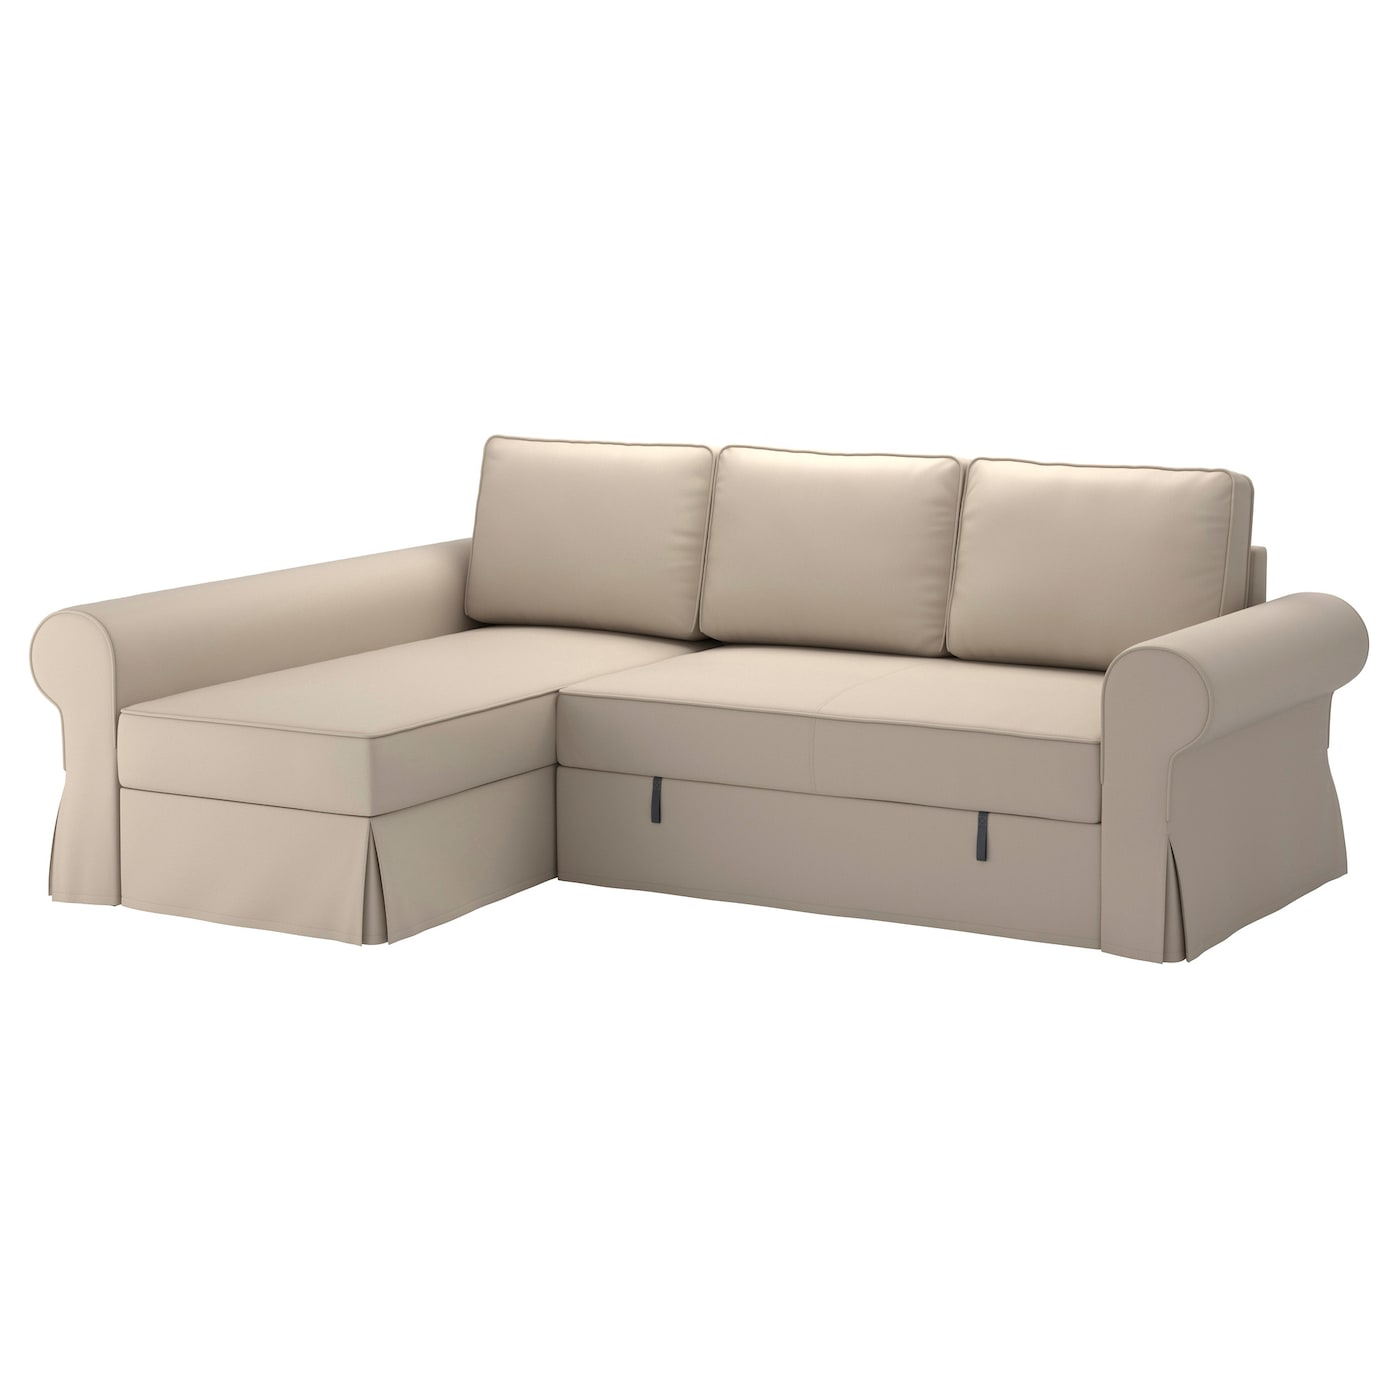 Backabro sofa bed with chaise longue ramna beige ikea for Chaise longue carrefour